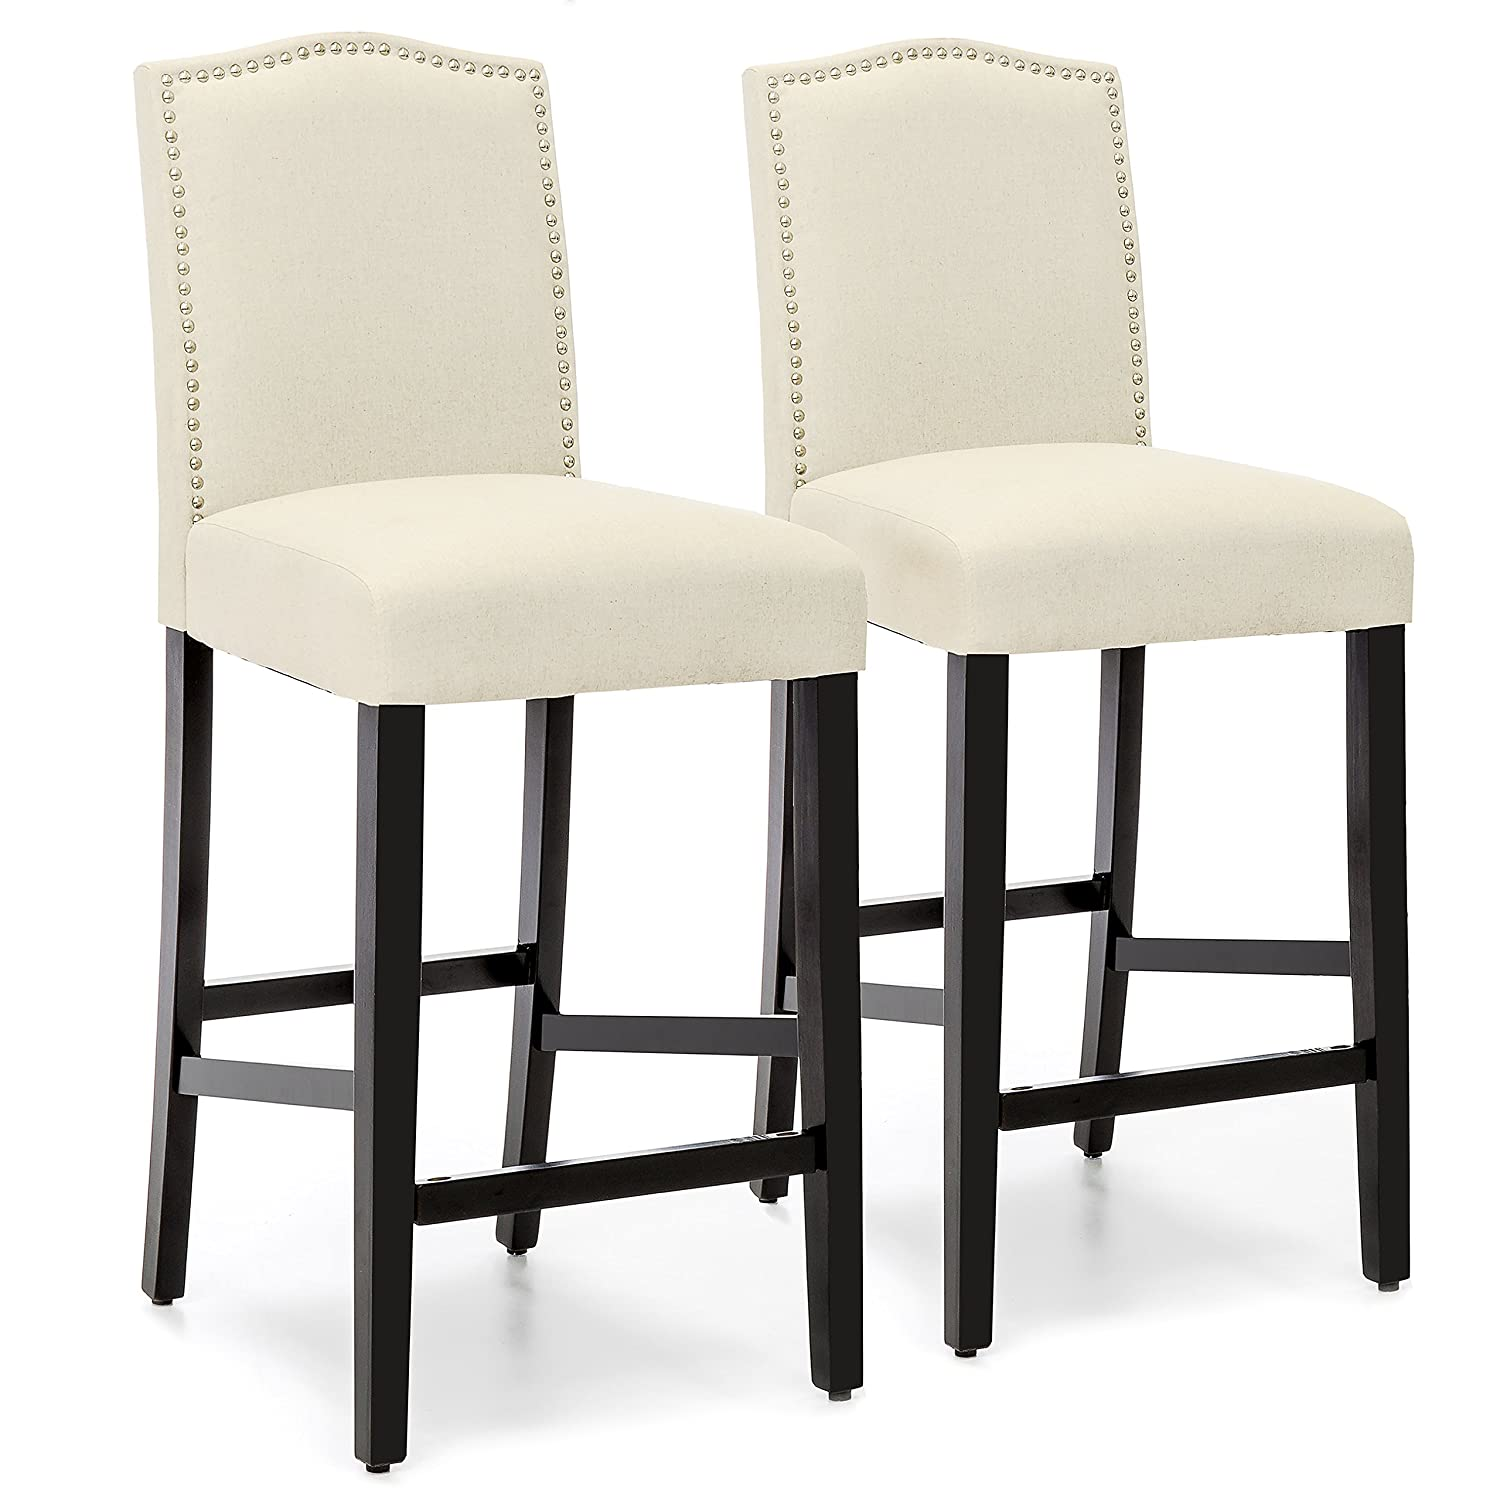 Groovy Best Choice Products Set Of 2 30In Faux Leather Counter Height Armless Bar Stool Chairs W Studded Trim Back Ivory Machost Co Dining Chair Design Ideas Machostcouk